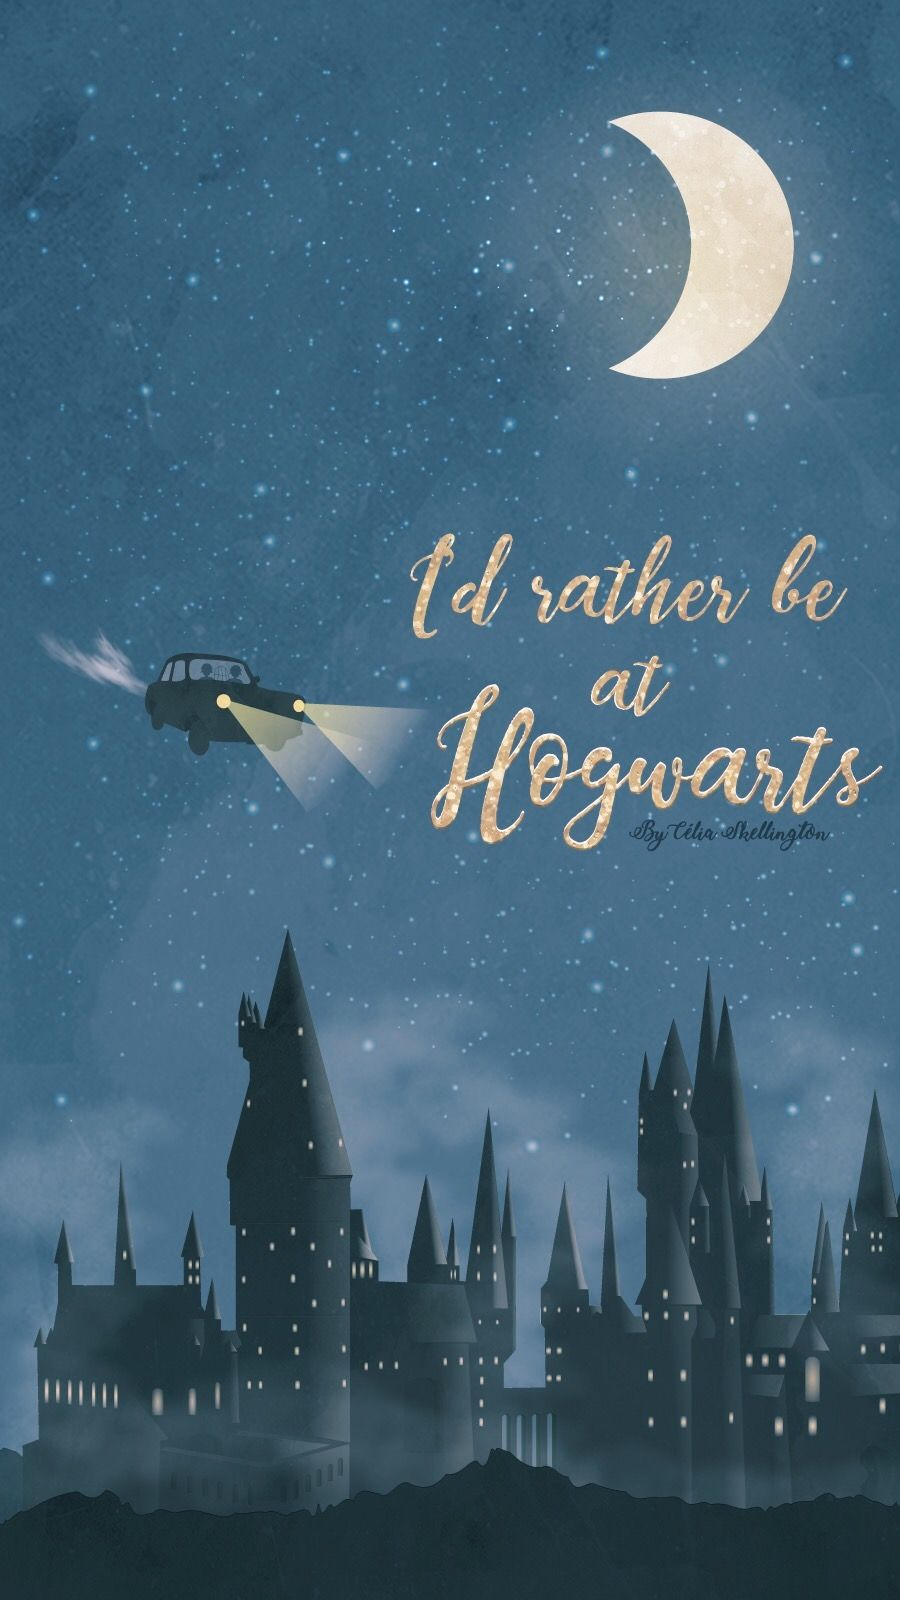 harry potter wallpaper hogwarts harry potter